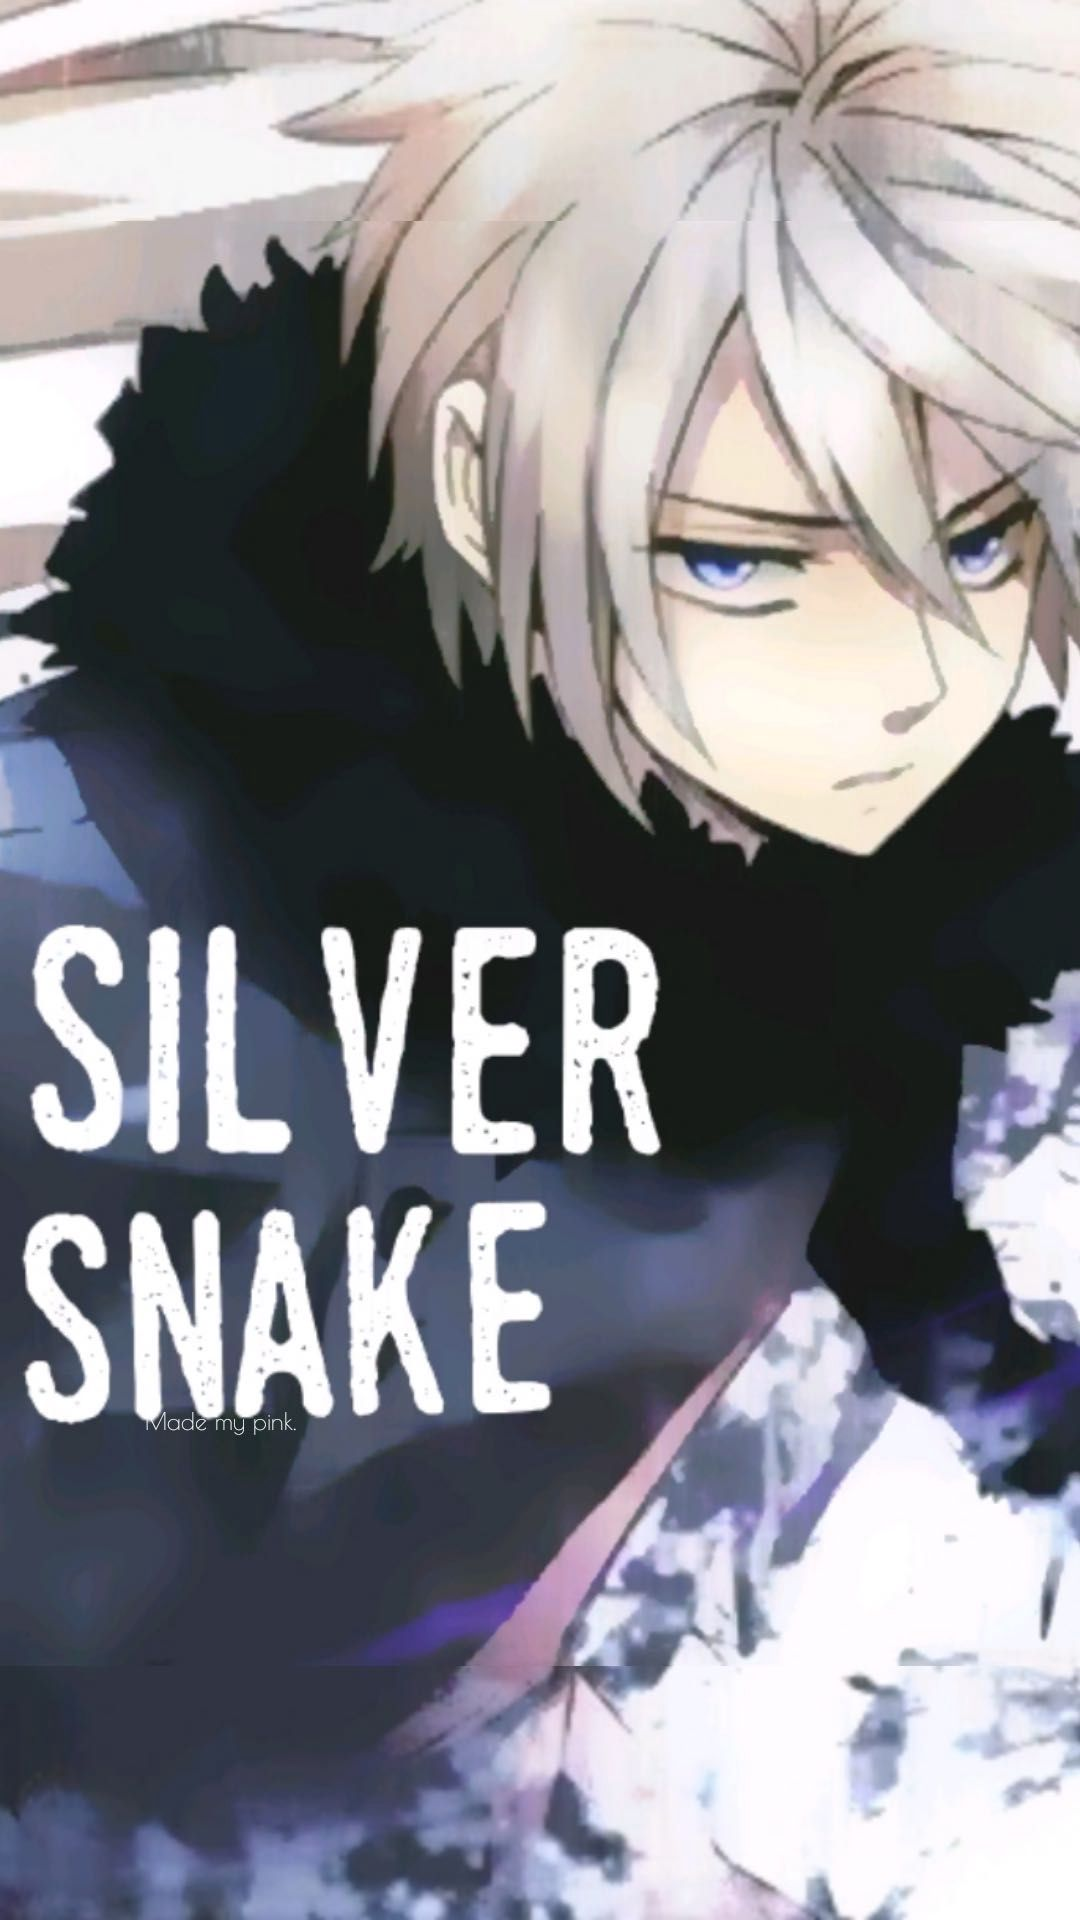 Silver Snake (Yandere Prince x Reader) - 6 Captured - Wattpad